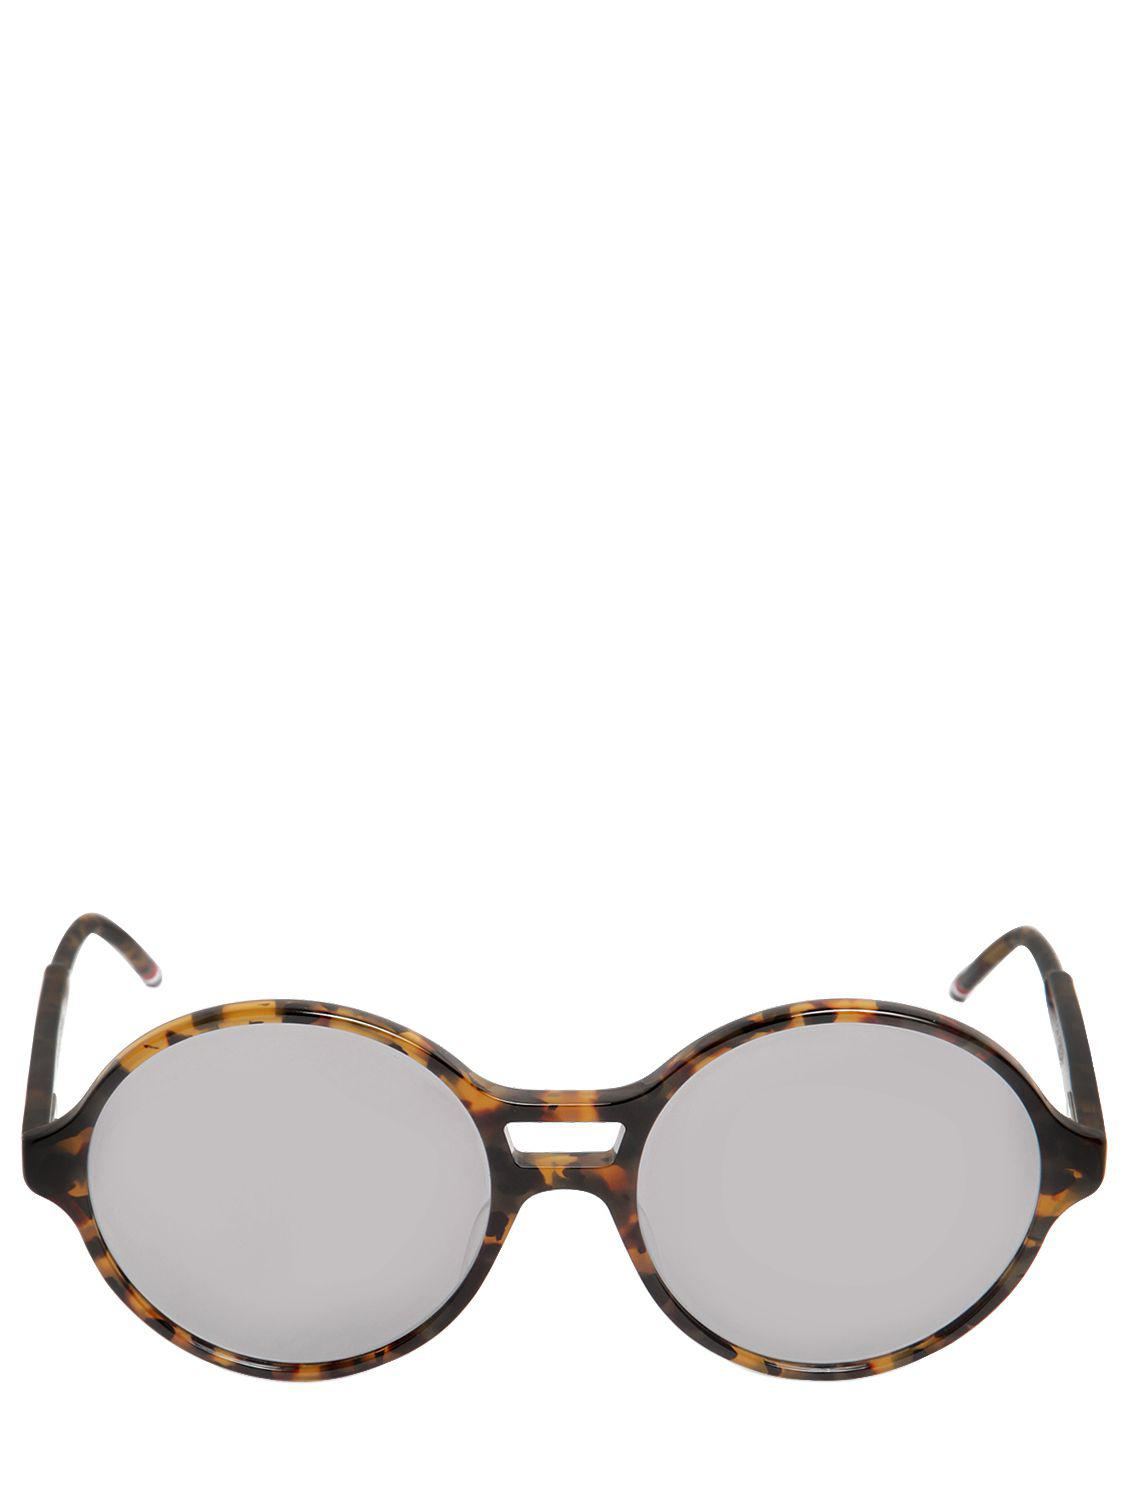 e84d7e34688 Lyst - Thom Browne Tokyo Acetate T-shell Round Sunglasses in Brown